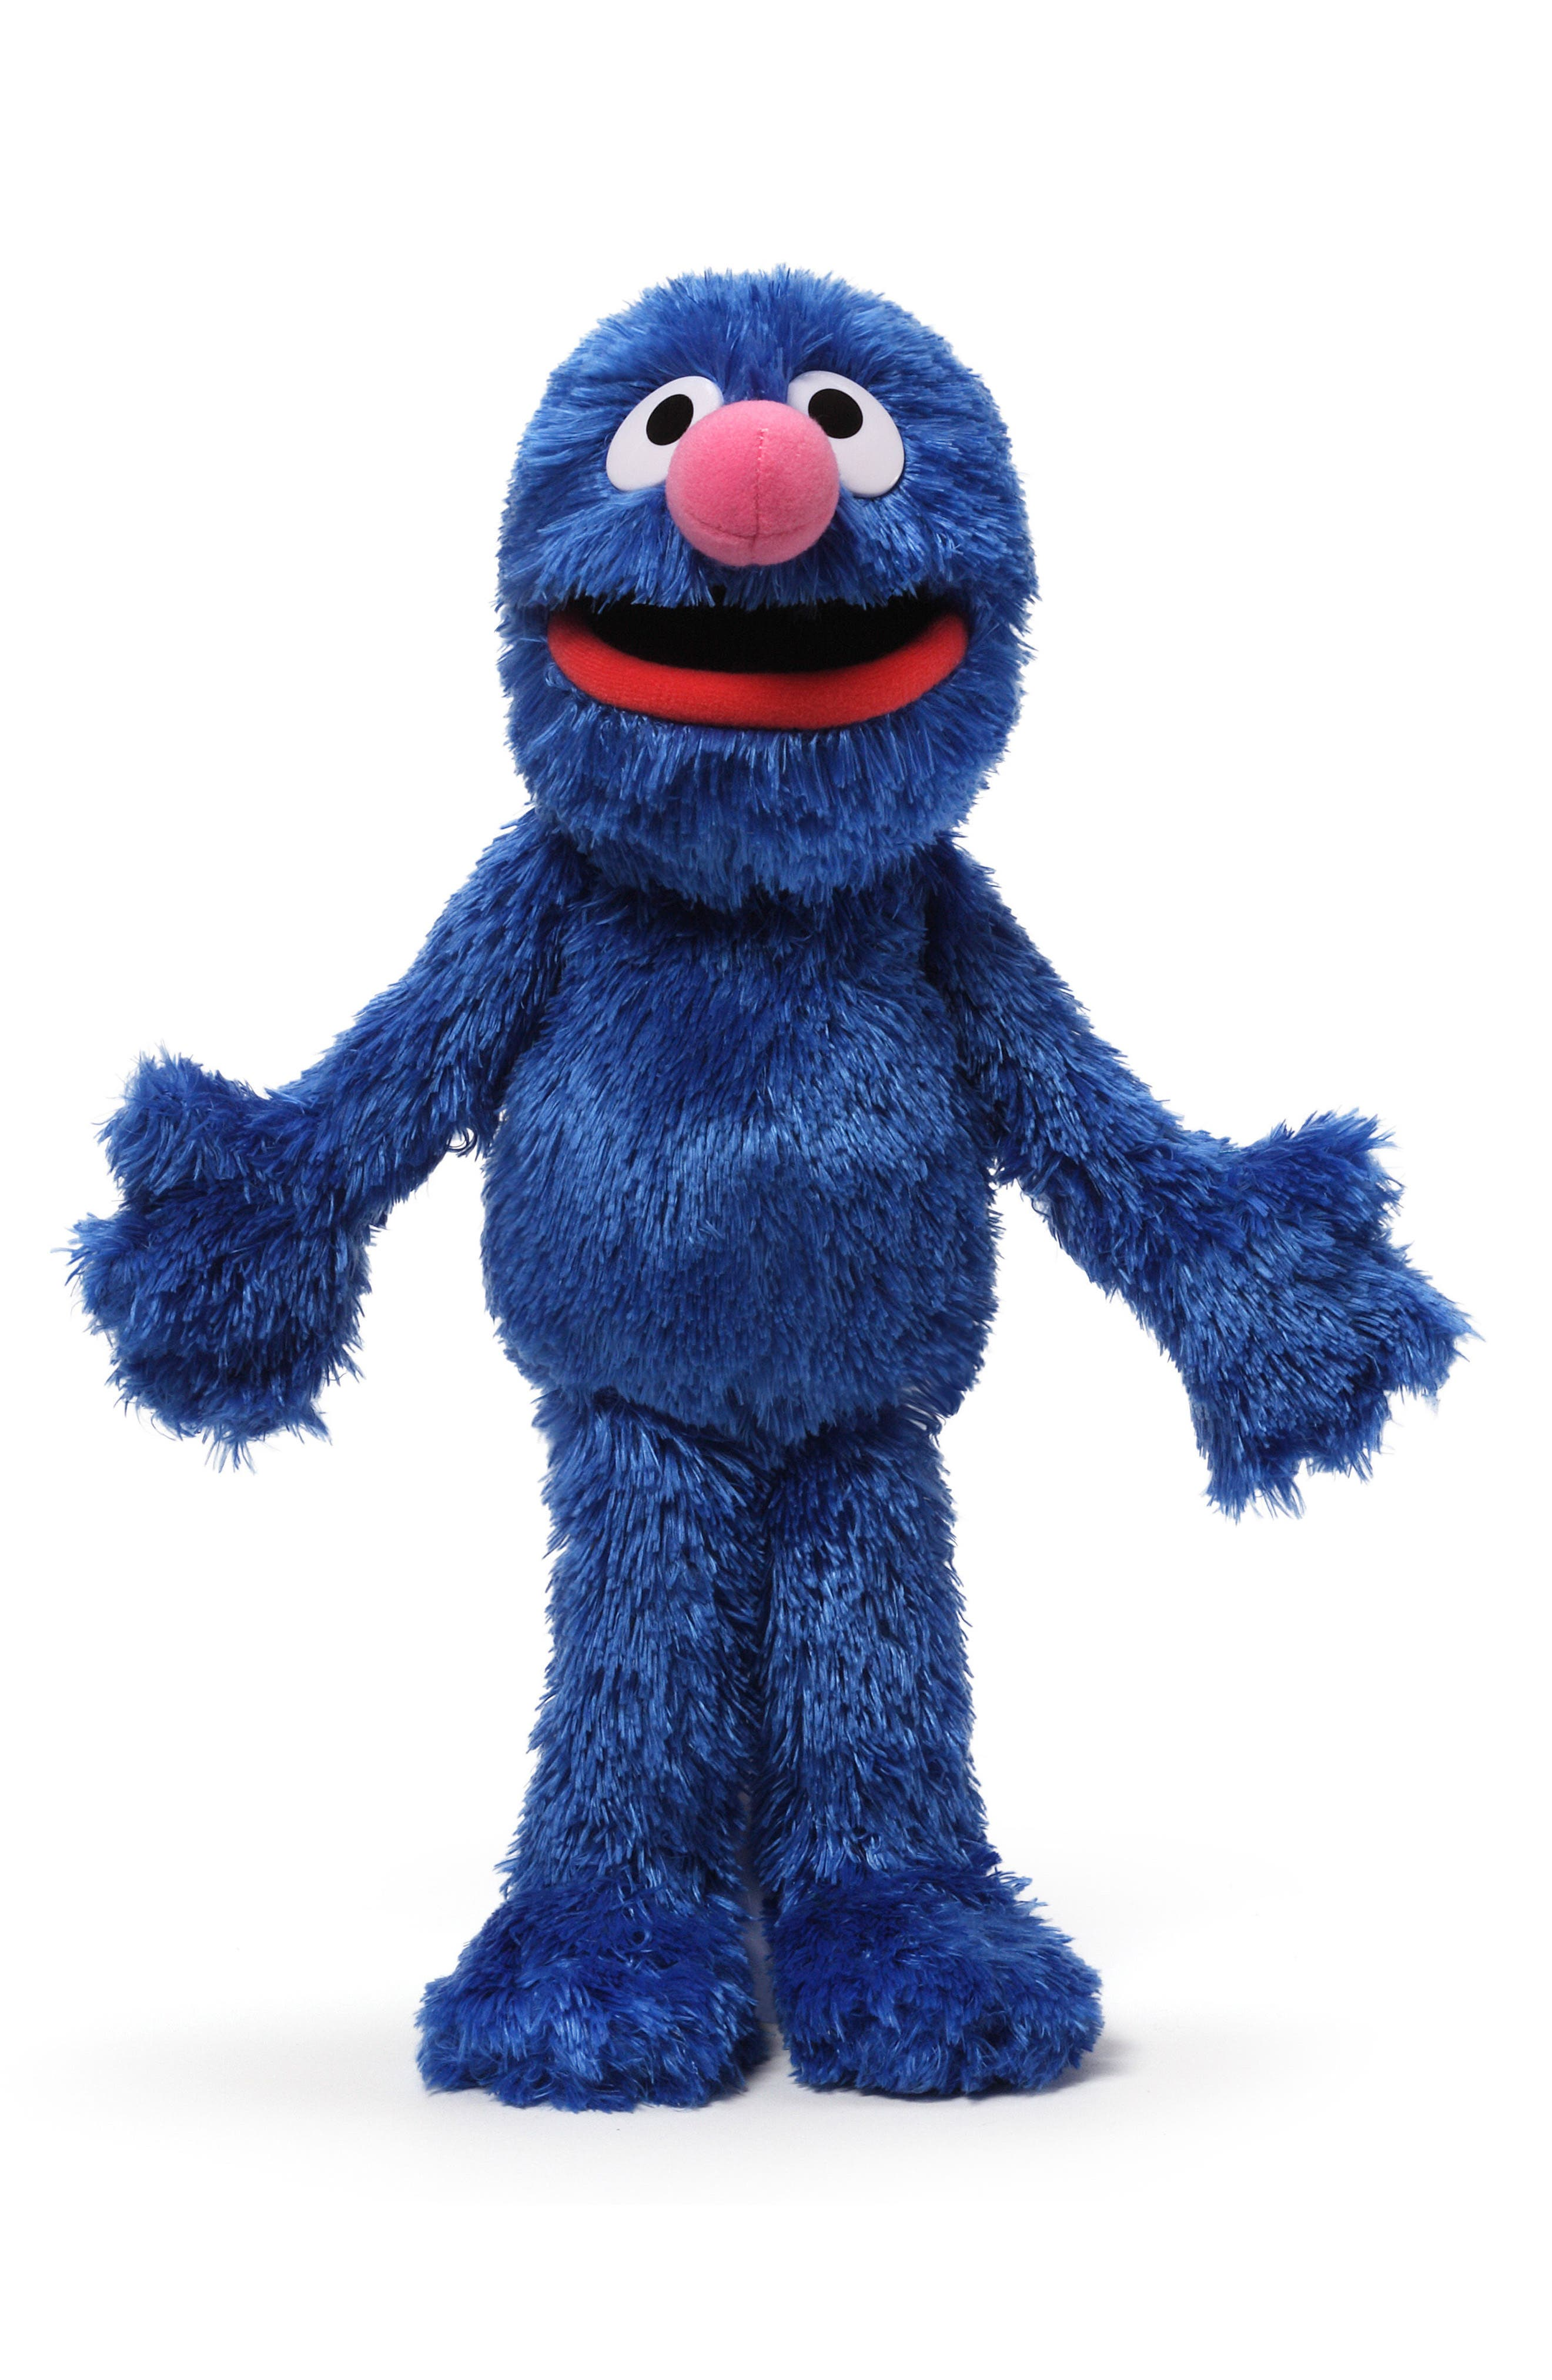 'Grover' Stuffed Toy,                             Main thumbnail 1, color,                             BLUE